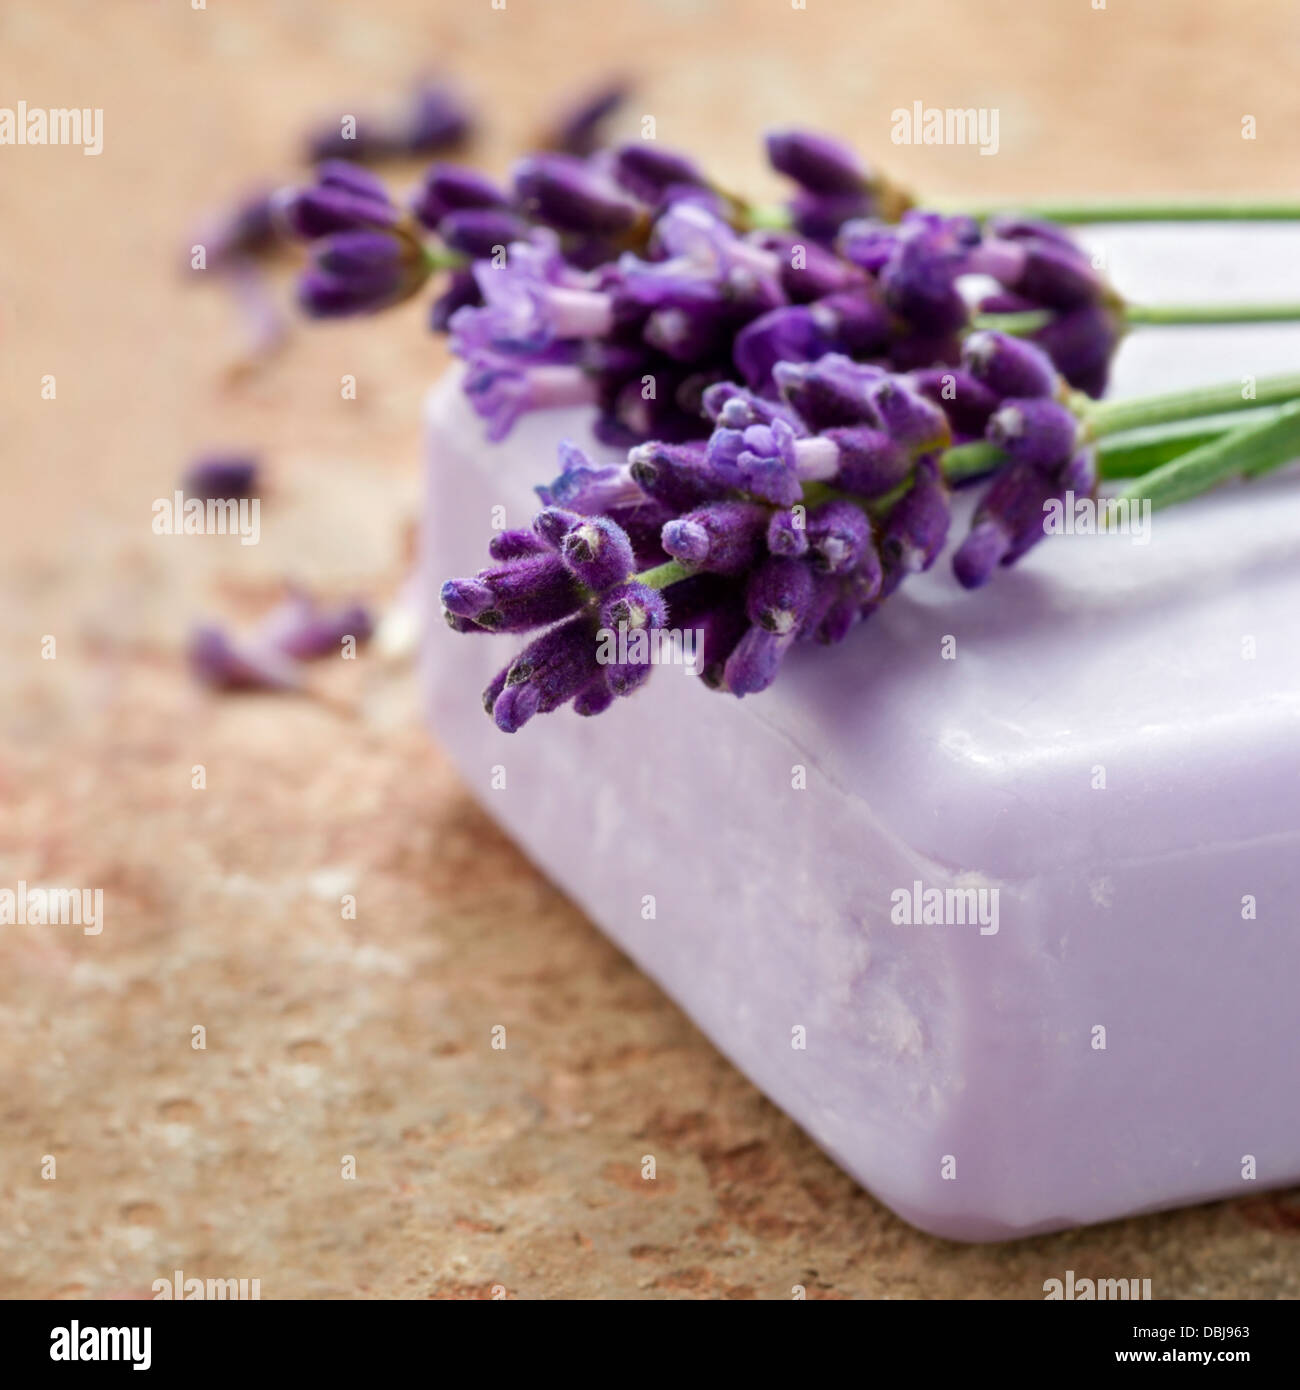 Bar of violet spa soap with fresh lavender flowers on rustic terracotta background - Stock Image